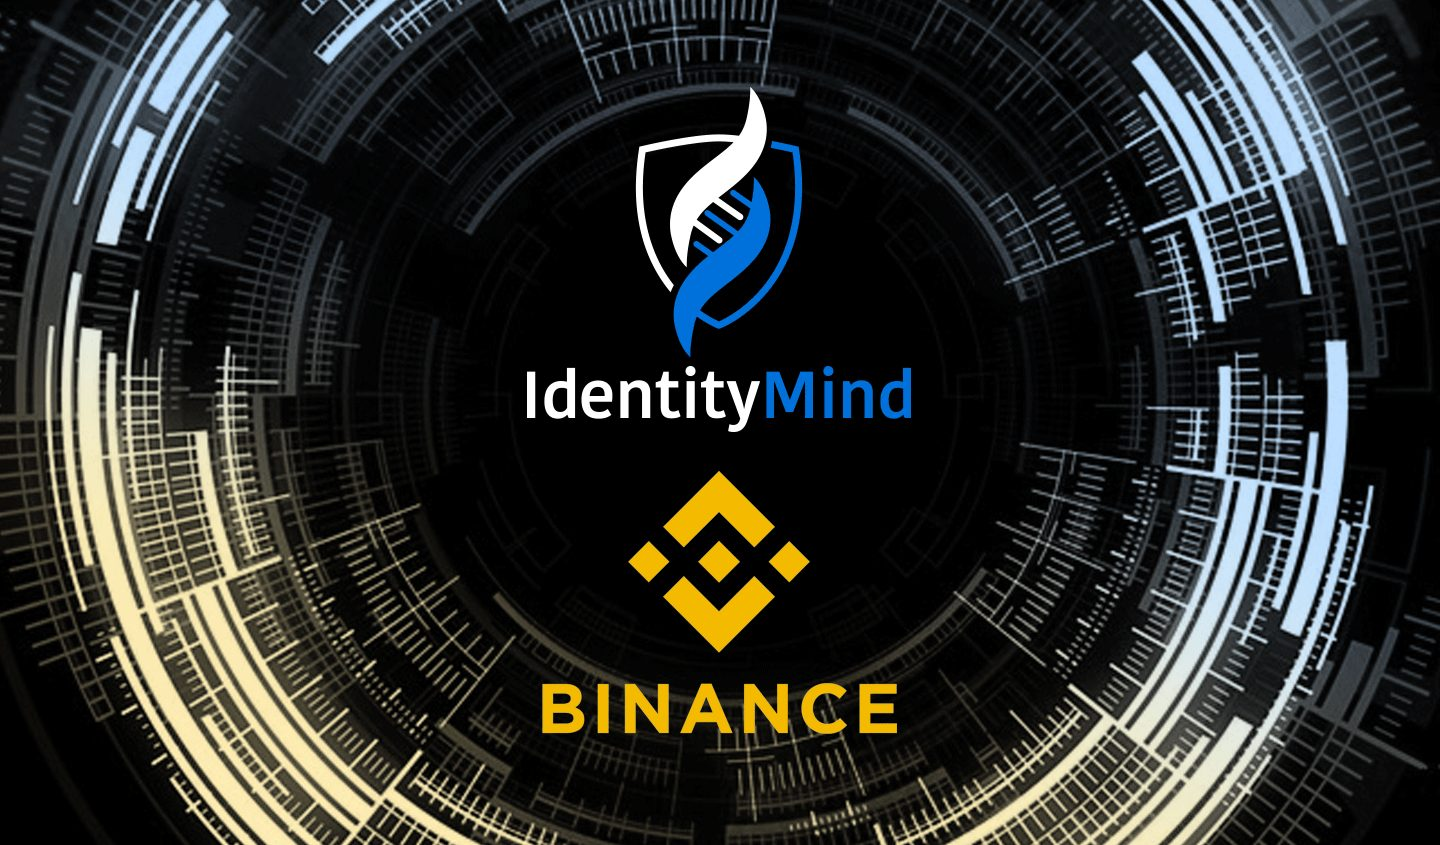 Binance Partners with IdentityMind to Enhance Compliance and Data Security Measures